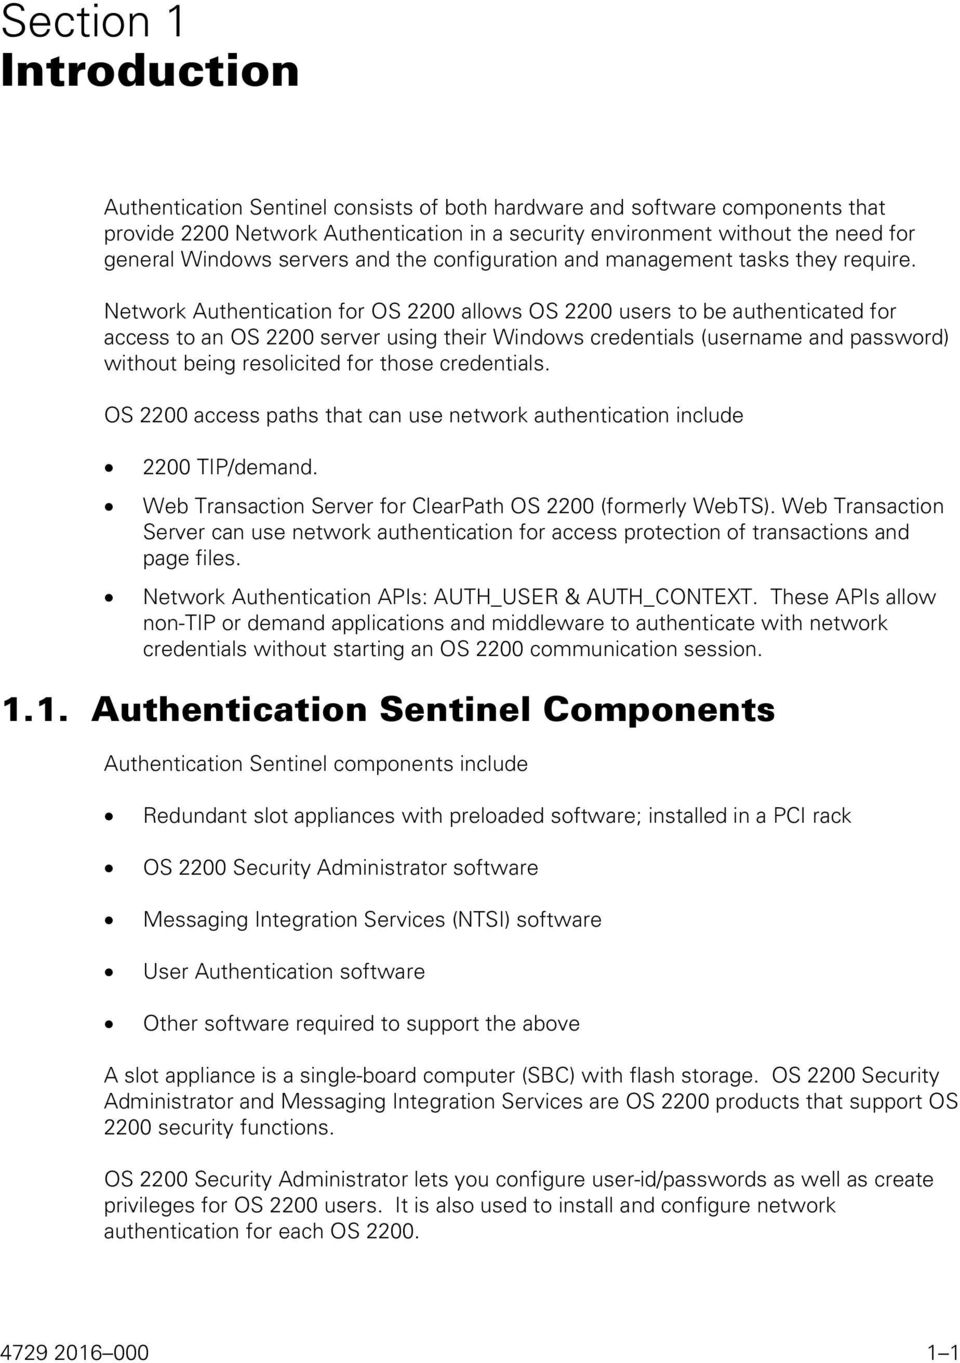 Network Authentication for OS 2200 allows OS 2200 users to be authenticated for access to an OS 2200 server using their Windows credentials (username and password) without being resolicited for those